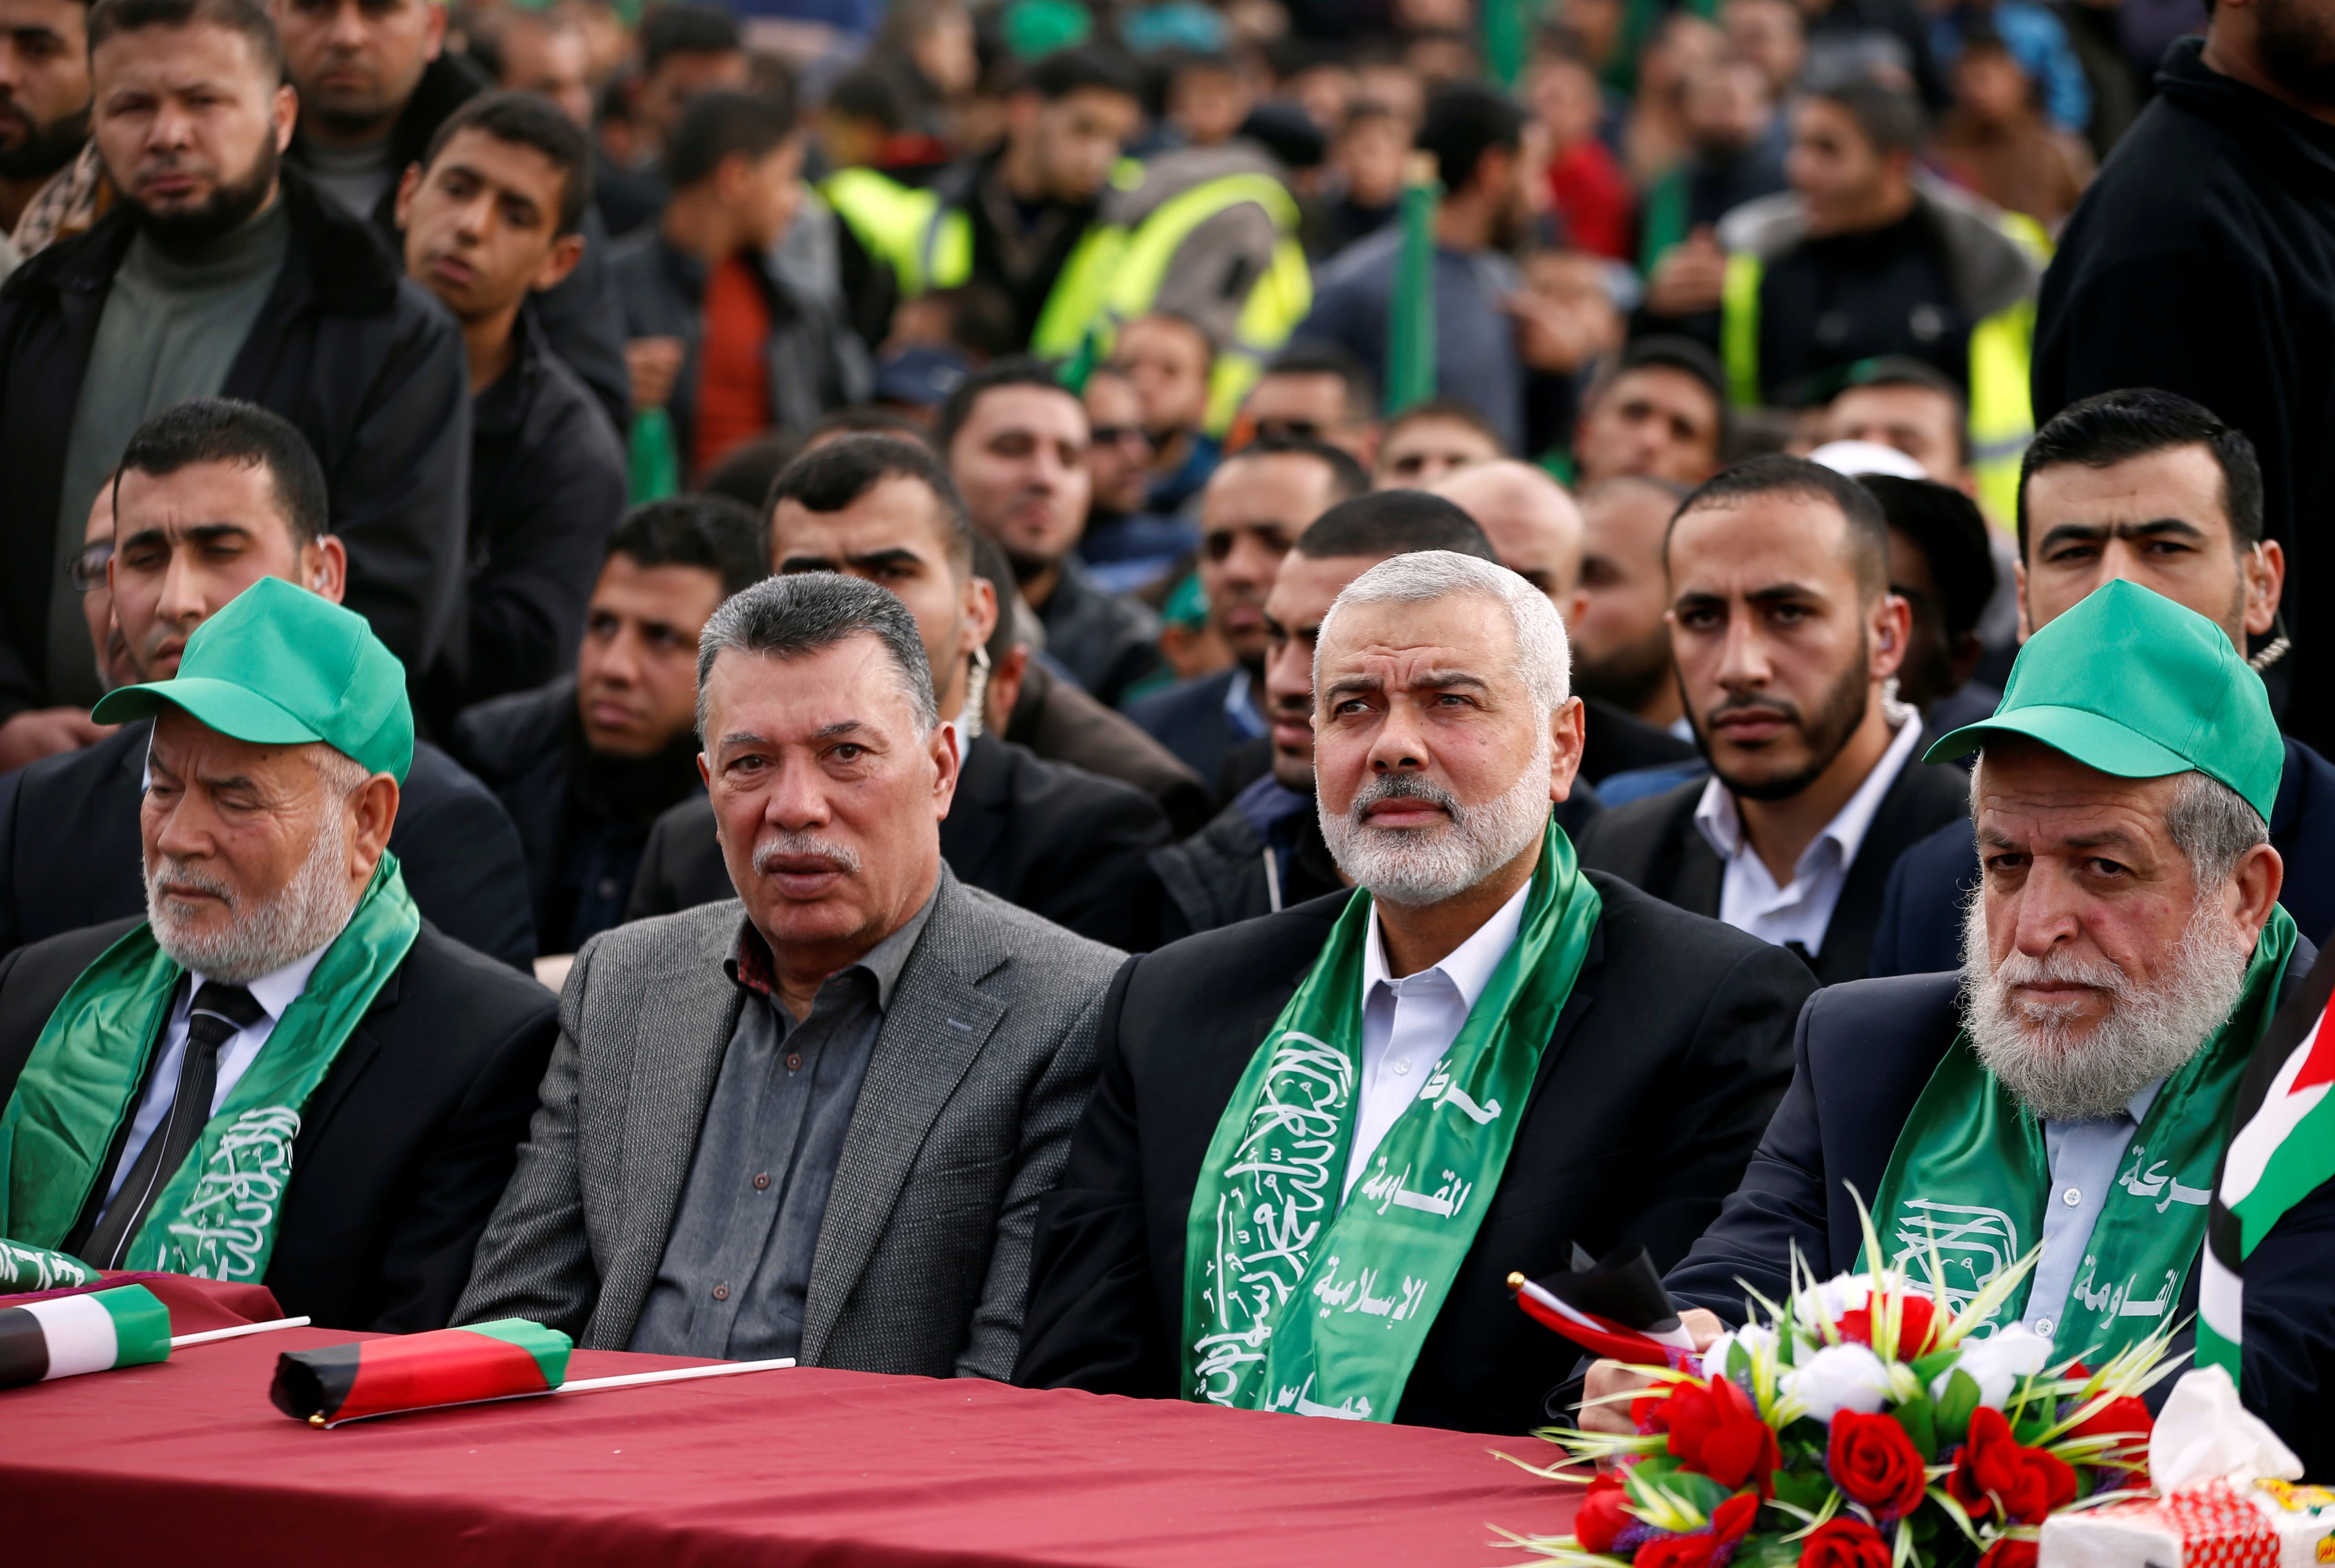 Hamas Chief Ismail Haniyeh attends a rally marking the 30th anniversary of Hamas' founding in Gaza City, December 14, 2017 (MOHAMMED SALEM/ REUTERS)